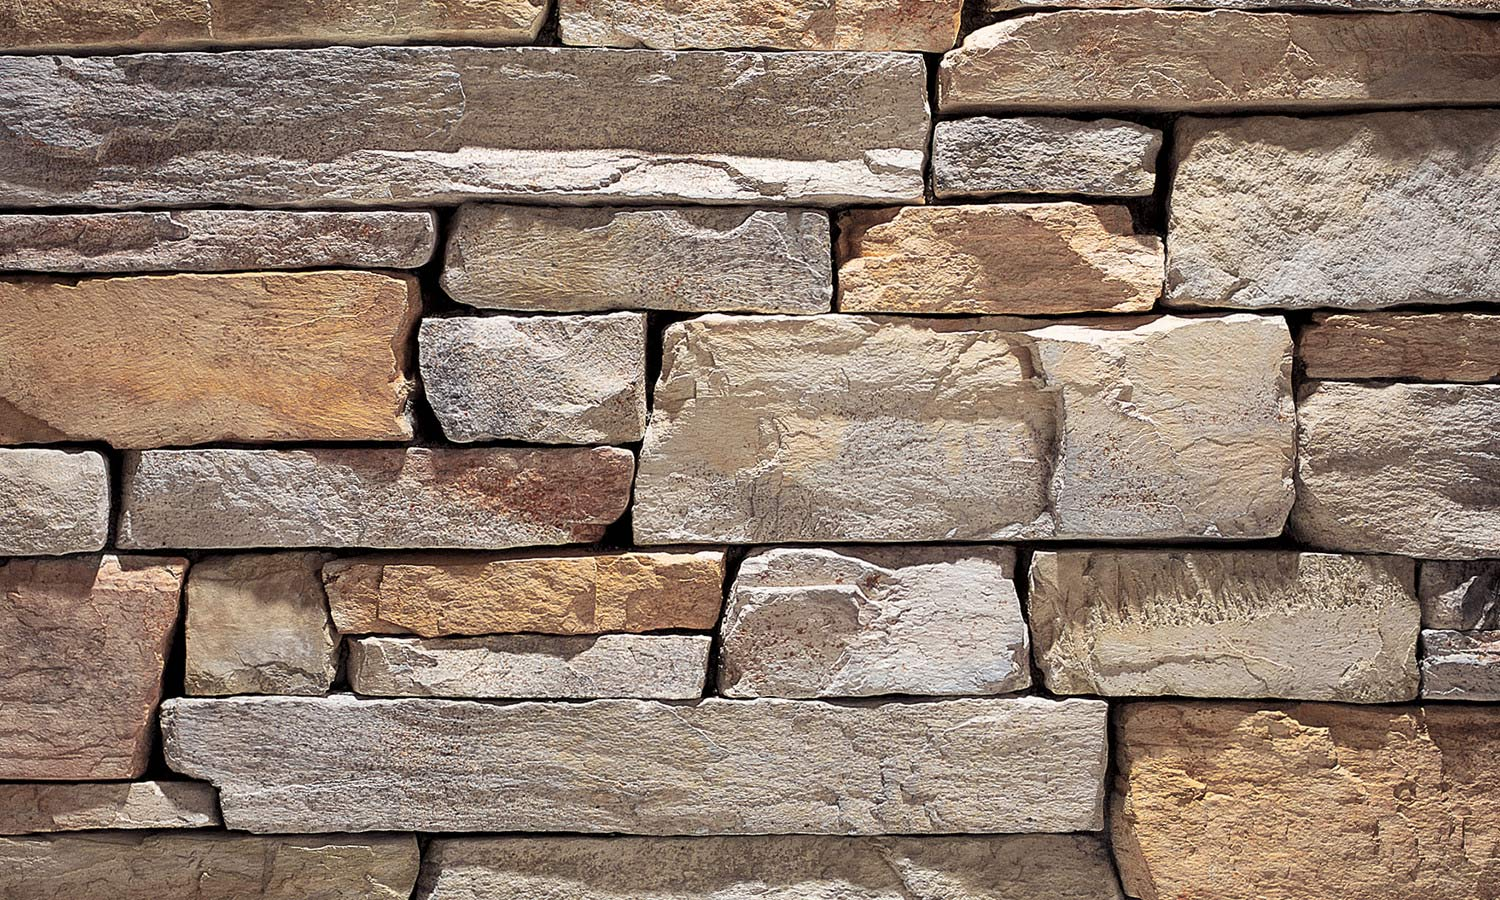 Manufactured stone products memphis stone and stucco for The most believable architectural stone veneer